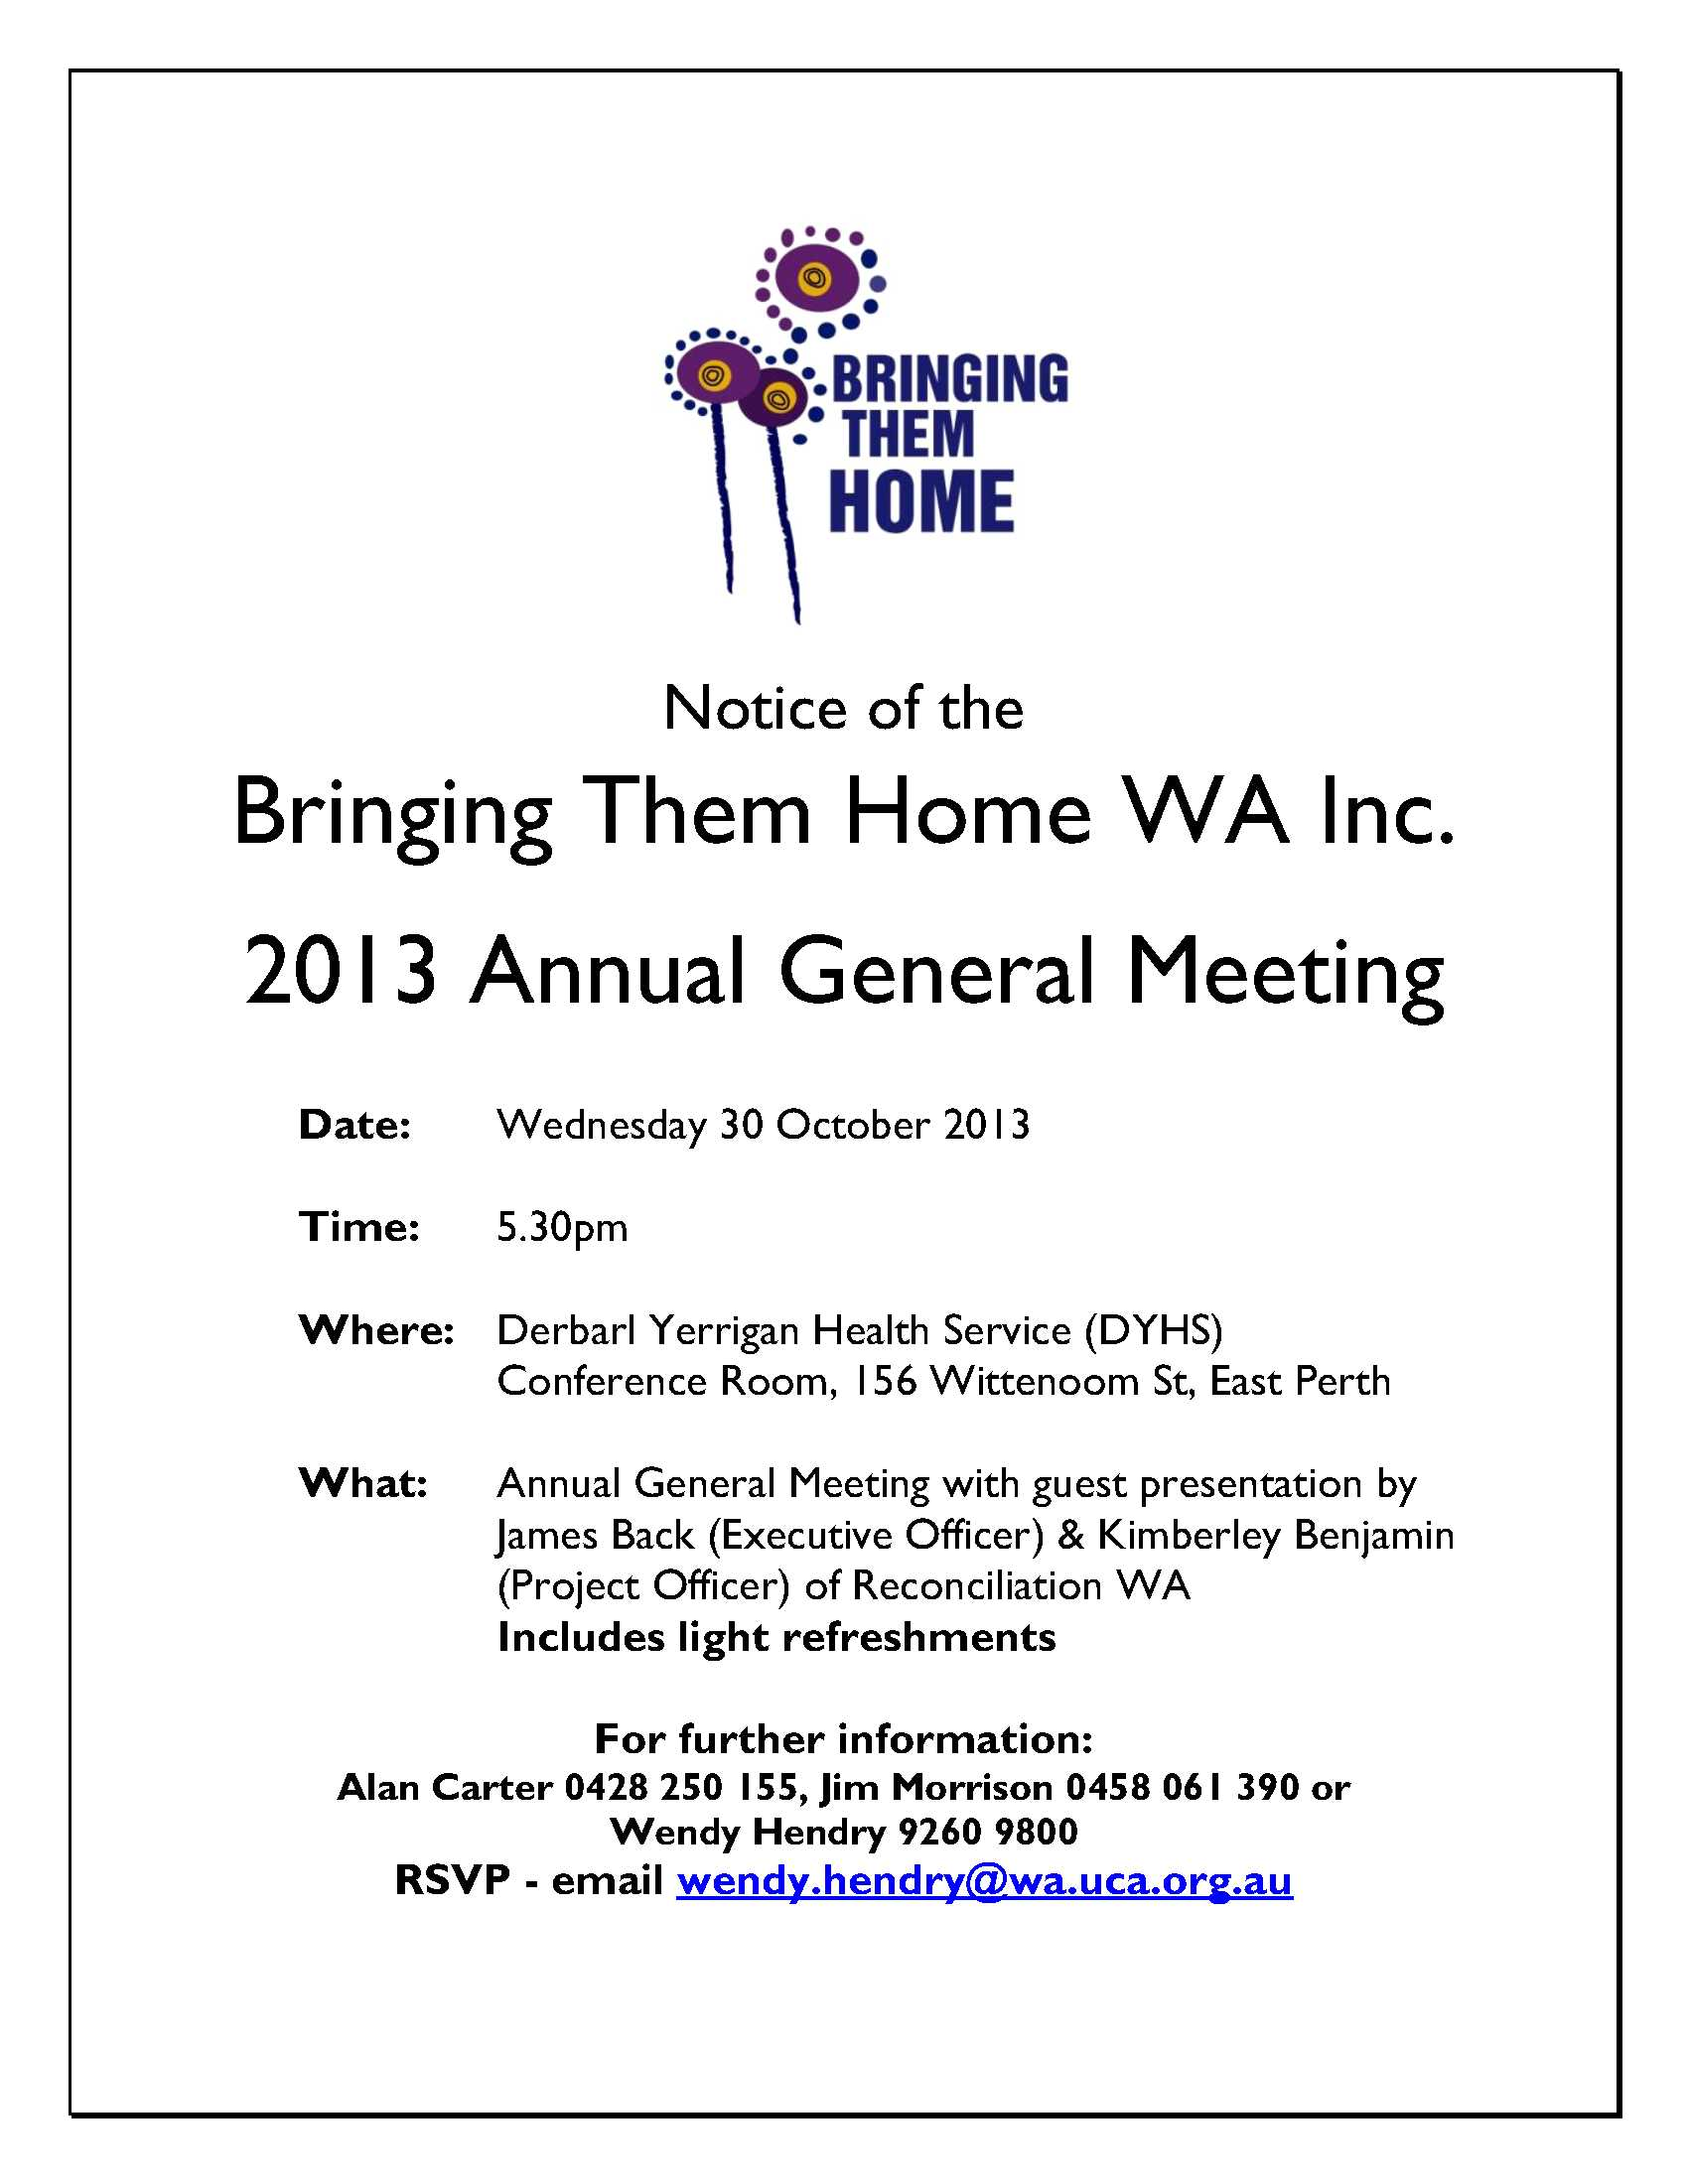 Notice of agm 30 october 2013 bringing them home wa notice of bth agm october 2013 altavistaventures Gallery